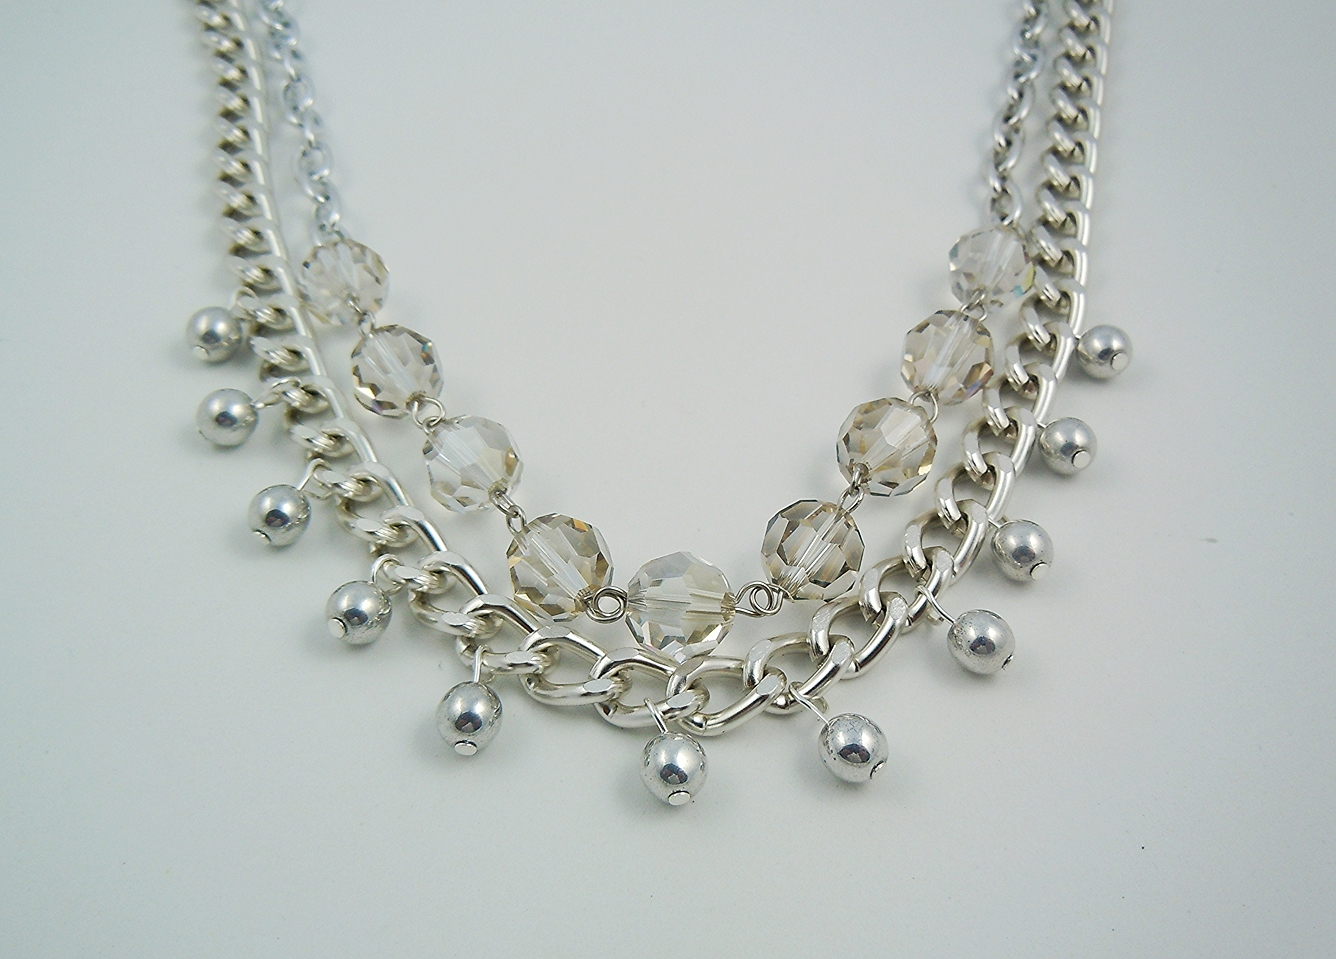 An all silver necklace that is sure to get noticed even with the most basic outfit. Made of Swarovski crystals and Czech glass beads